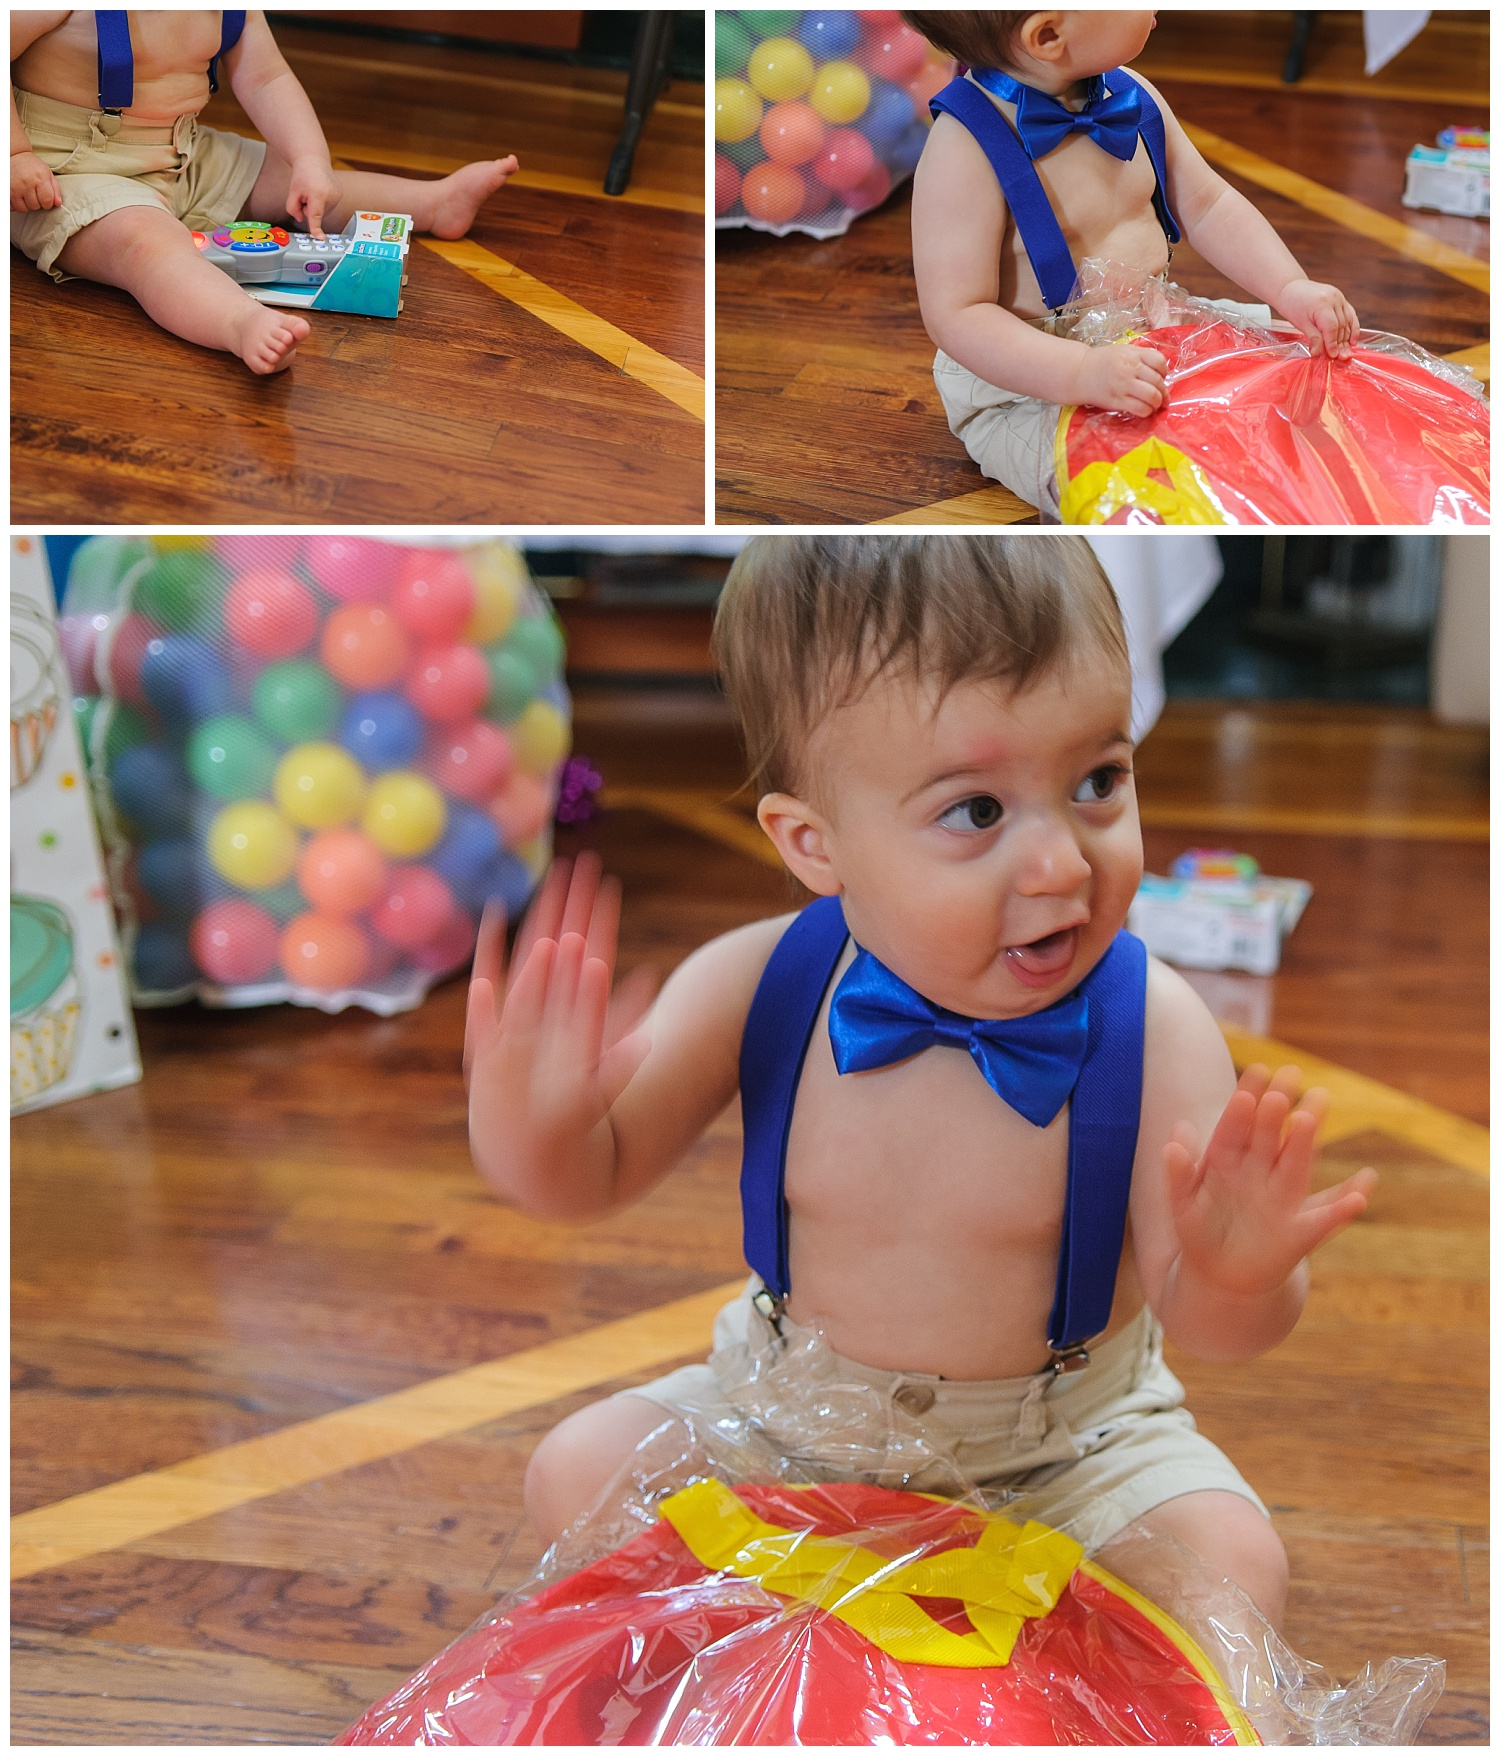 these are images of a one year old child wearing a bow tie and opening presents at his one year old birthday party in marietta, georgia.